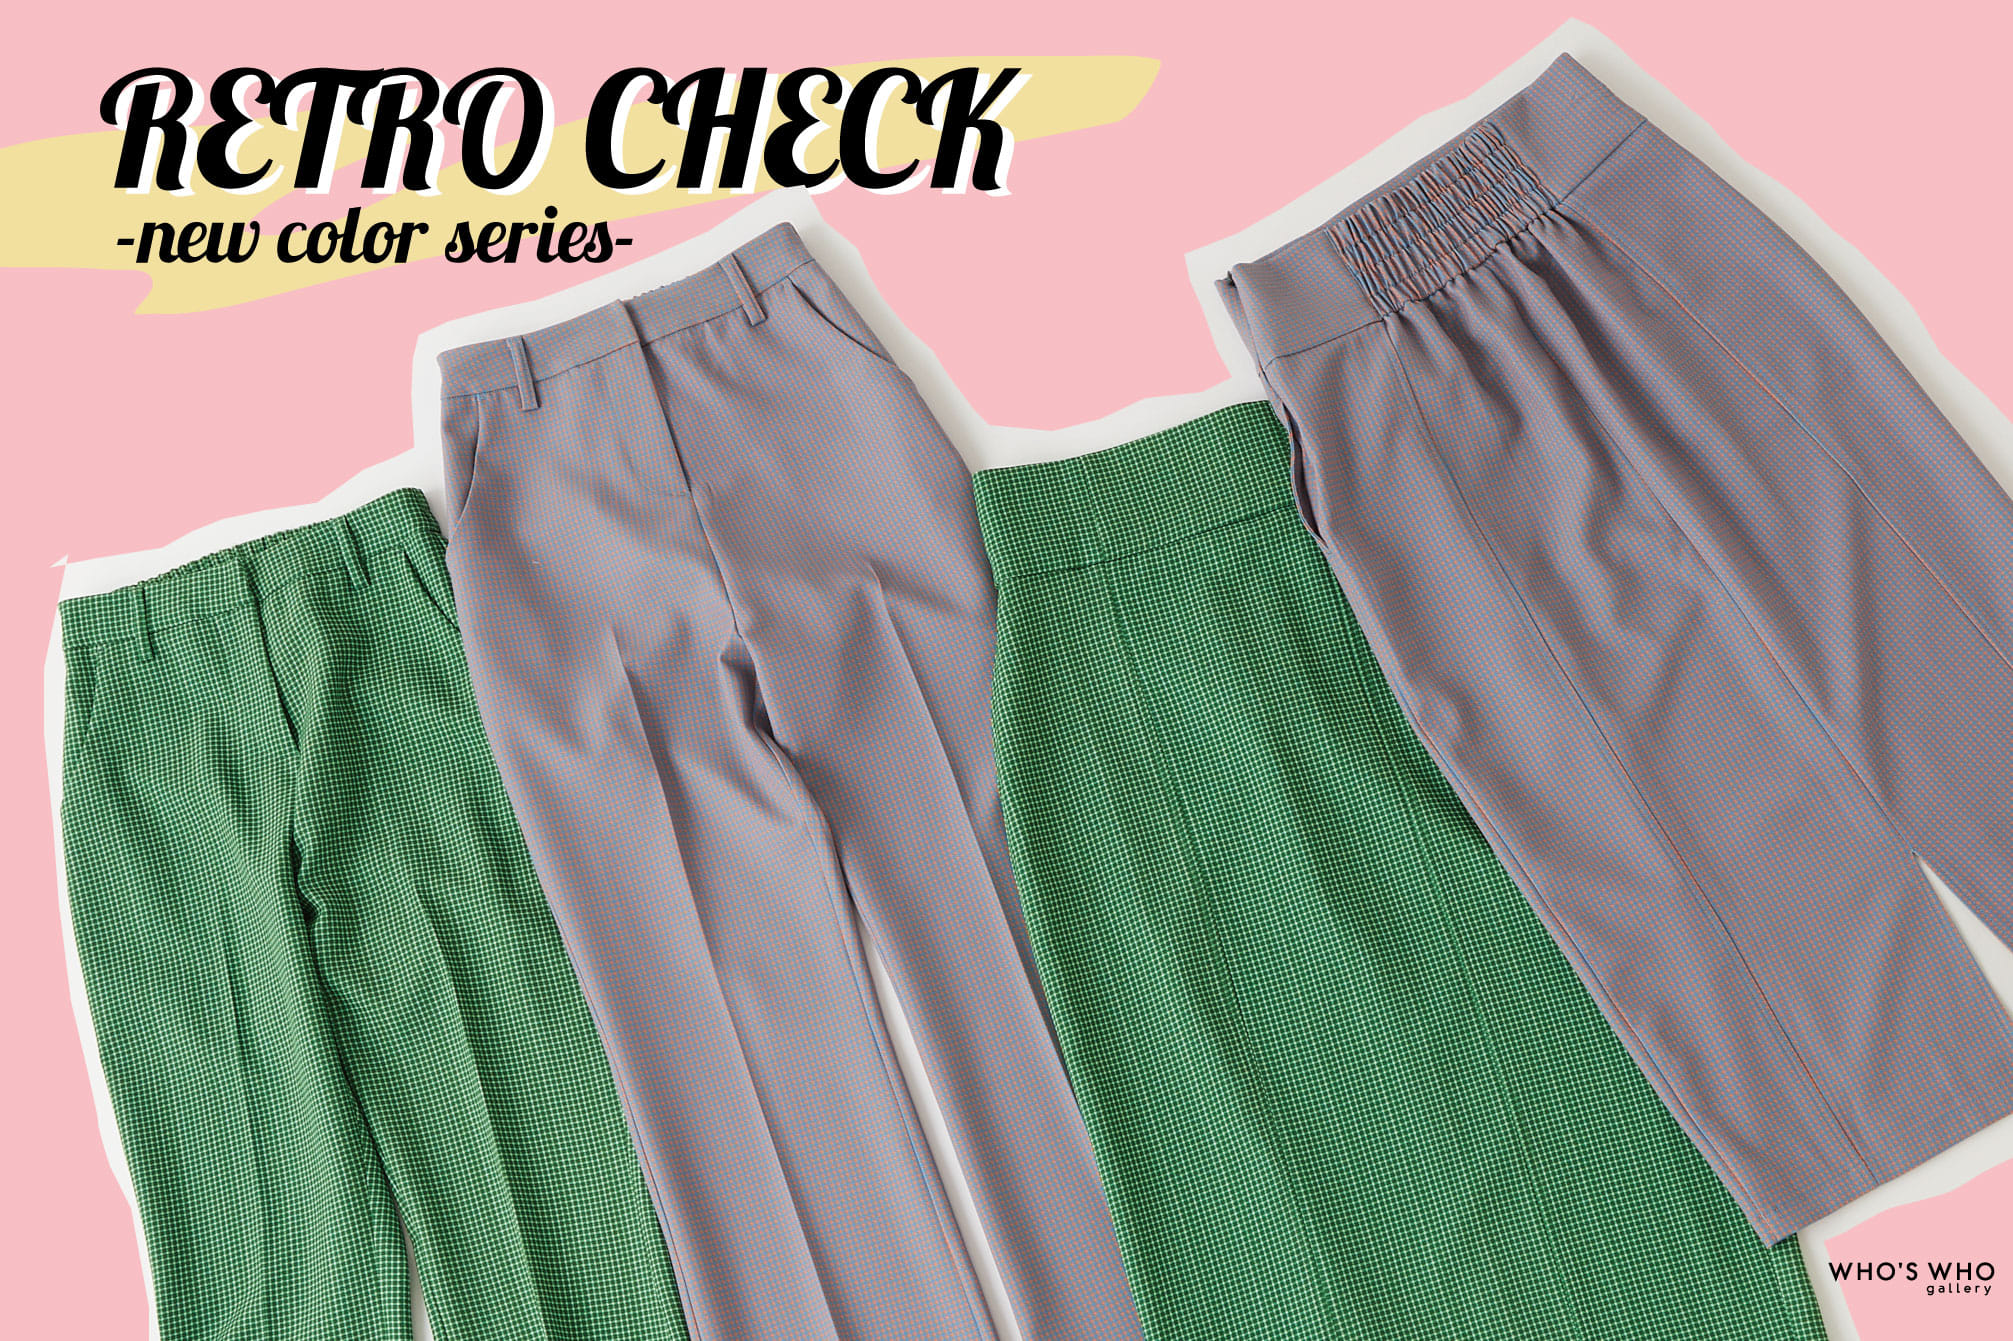 WHO'S WHO gallery 【RETRO CHECK】new color series